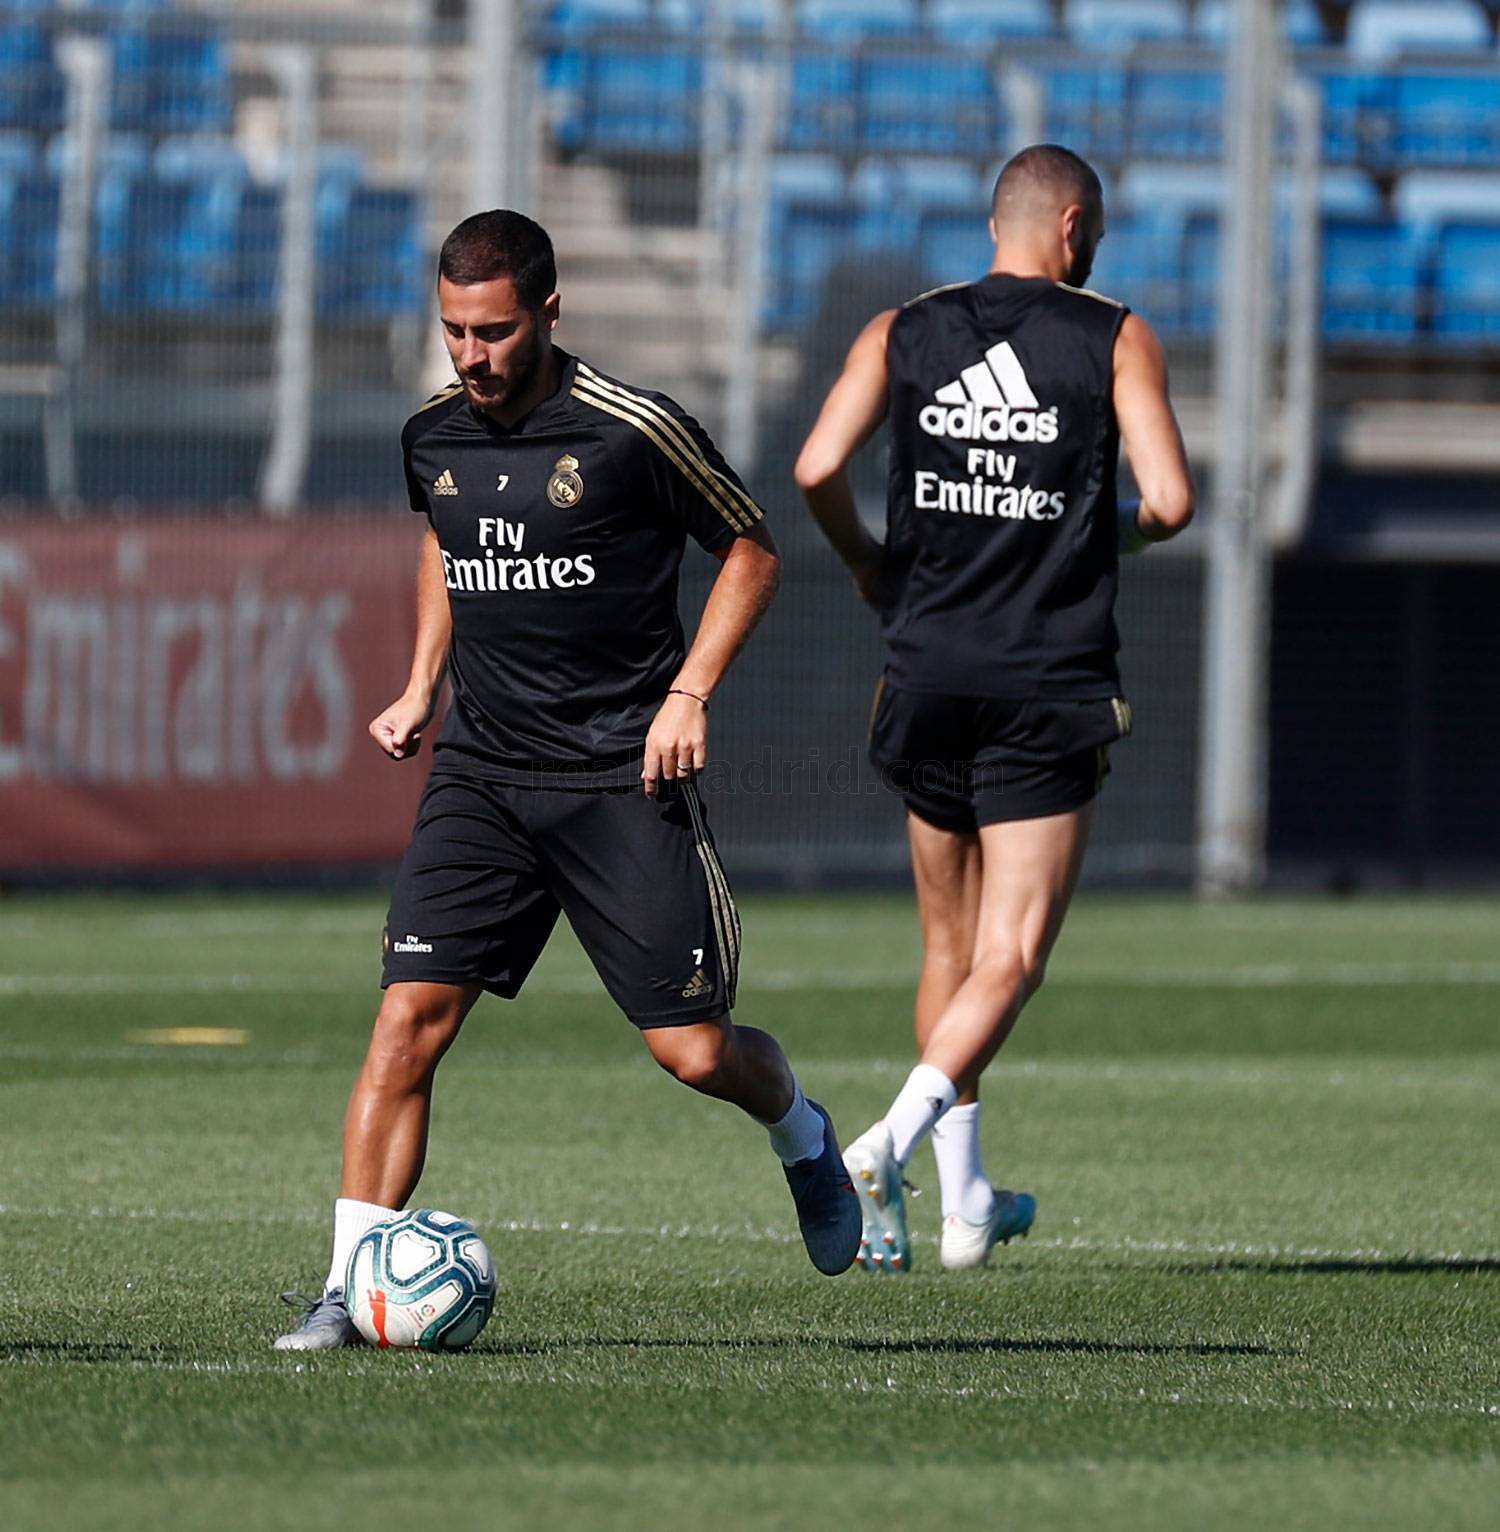 Real Madrid - Entrenamiento del Real Madrid  - 15-08-2019